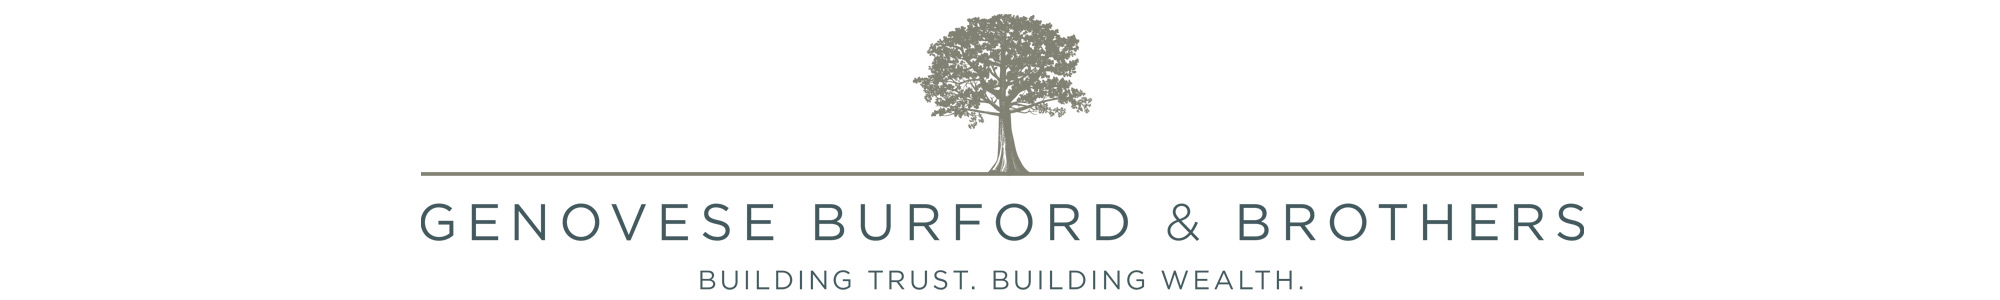 Genovese Burford & Brothers - Building Trust. Building Wealth. logo